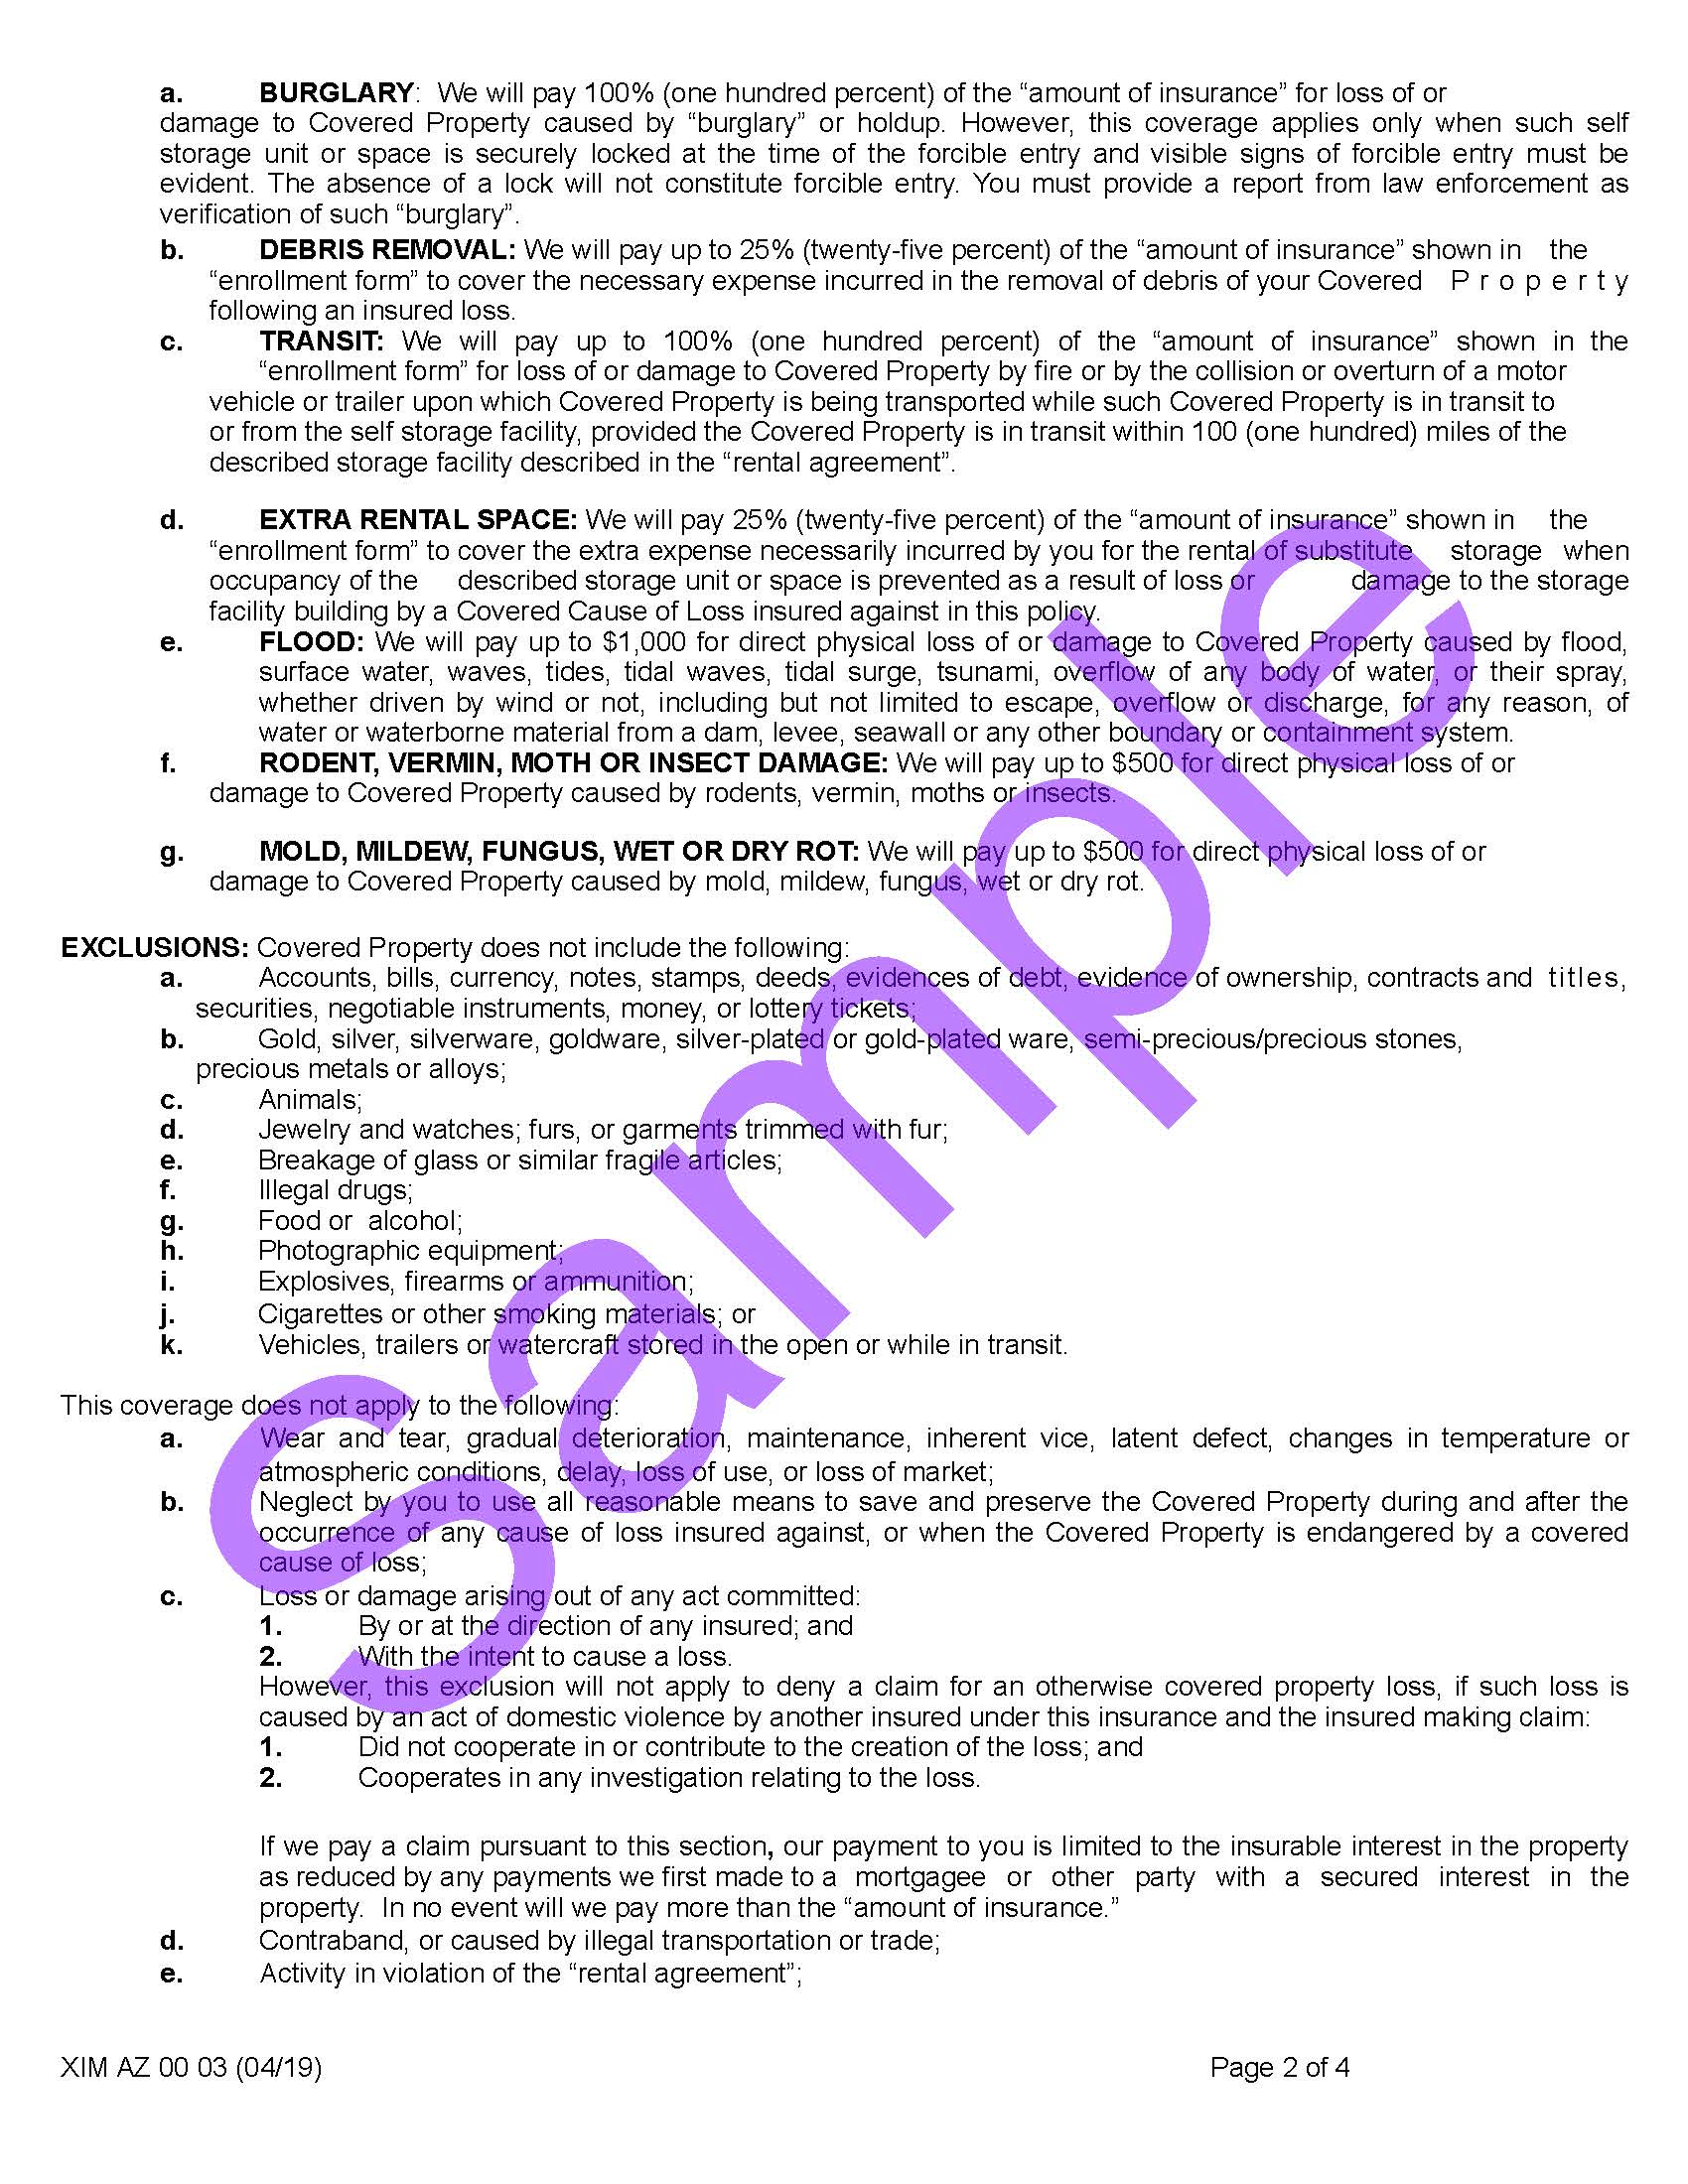 XIM AZ 00 03 04 19 Arizona Certificate of Insurance_Page_2.jpg